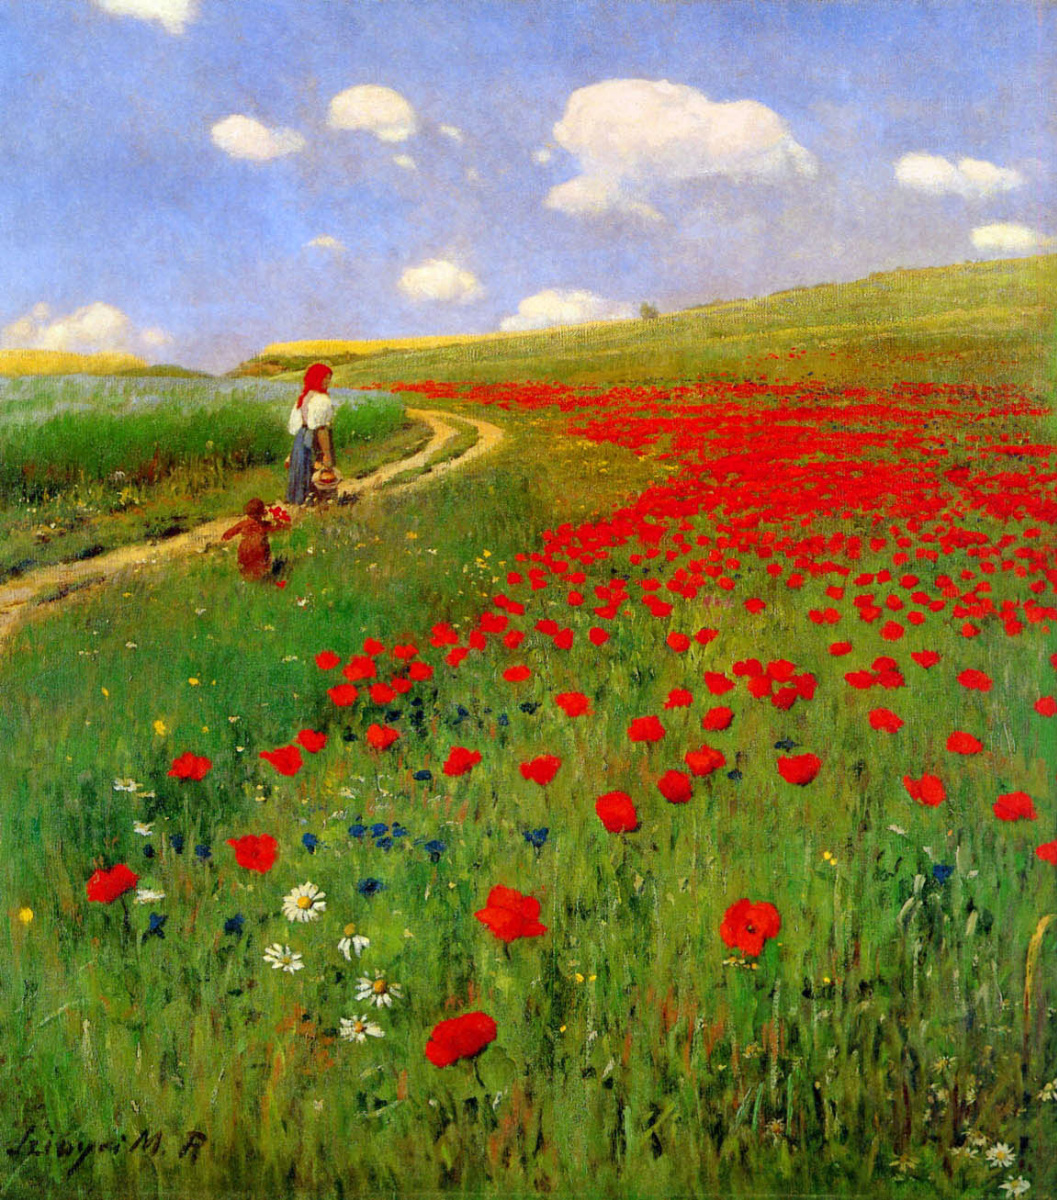 Pál Szinyei Merse. Meadows with poppies